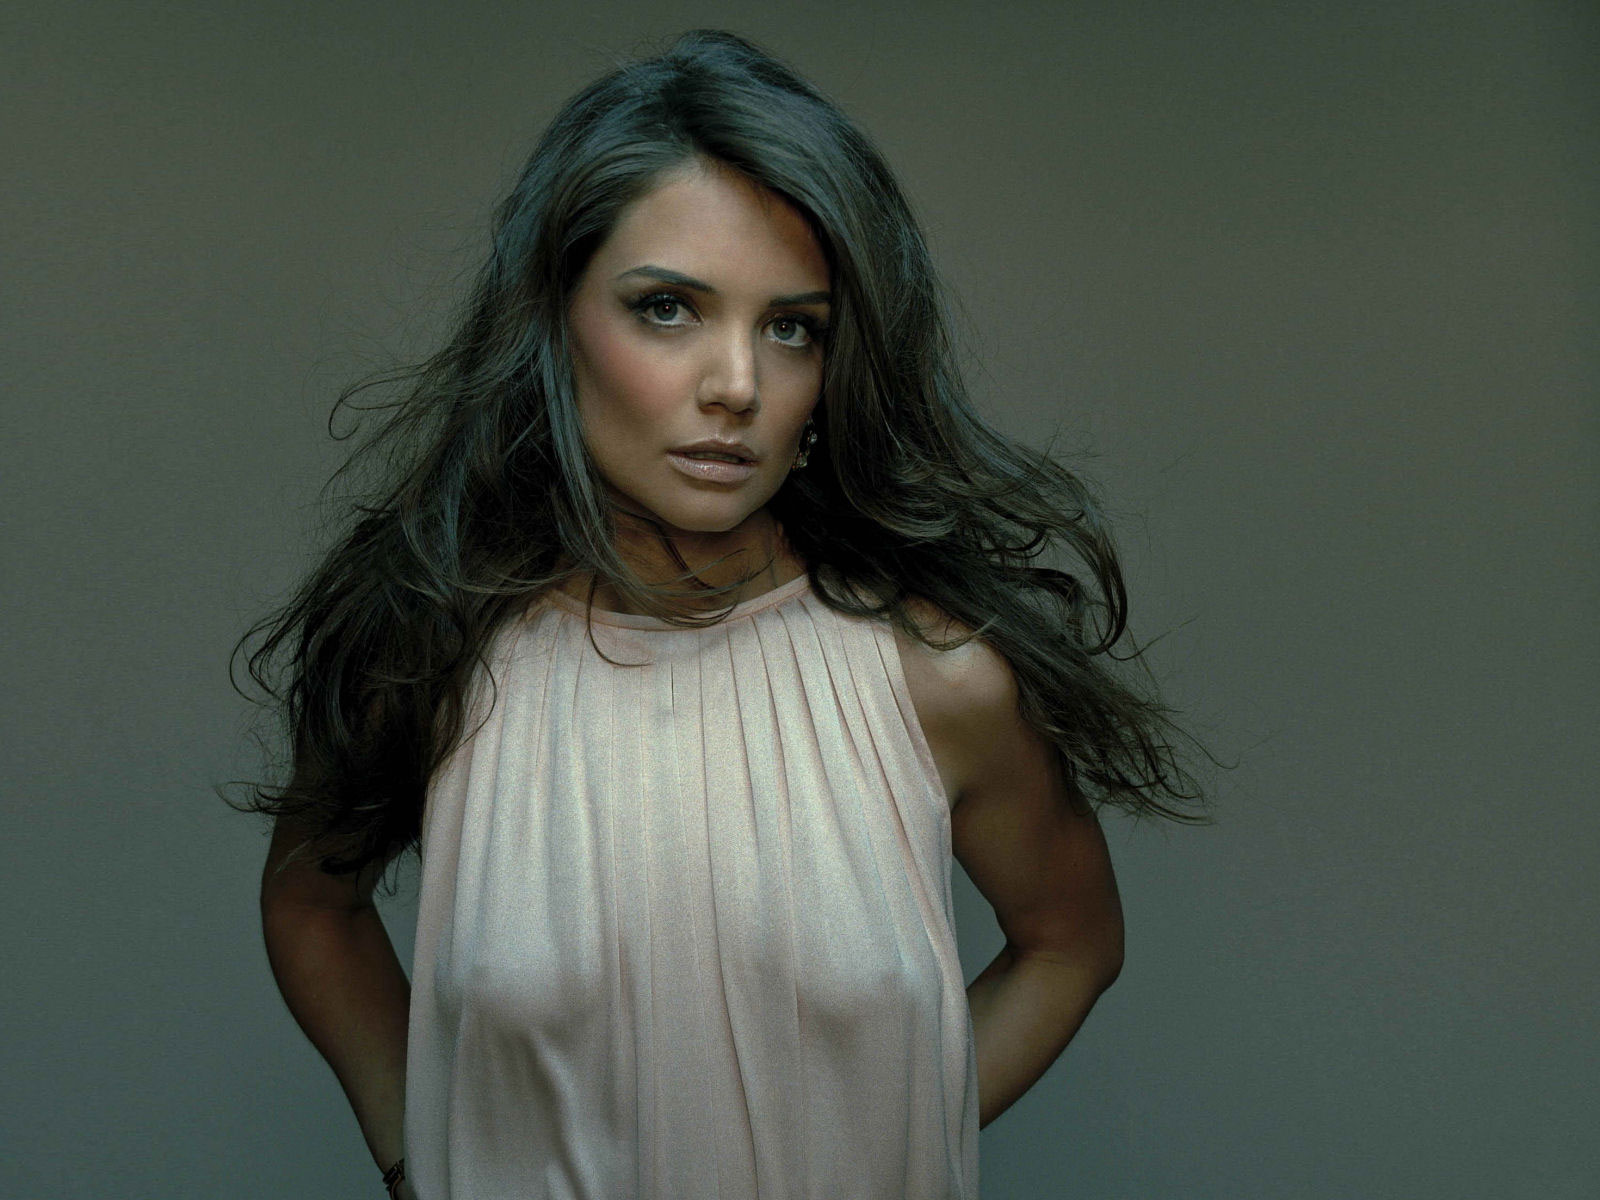 Abandon Actress Katie Holmes Hd Wallpaper 1600x1200px